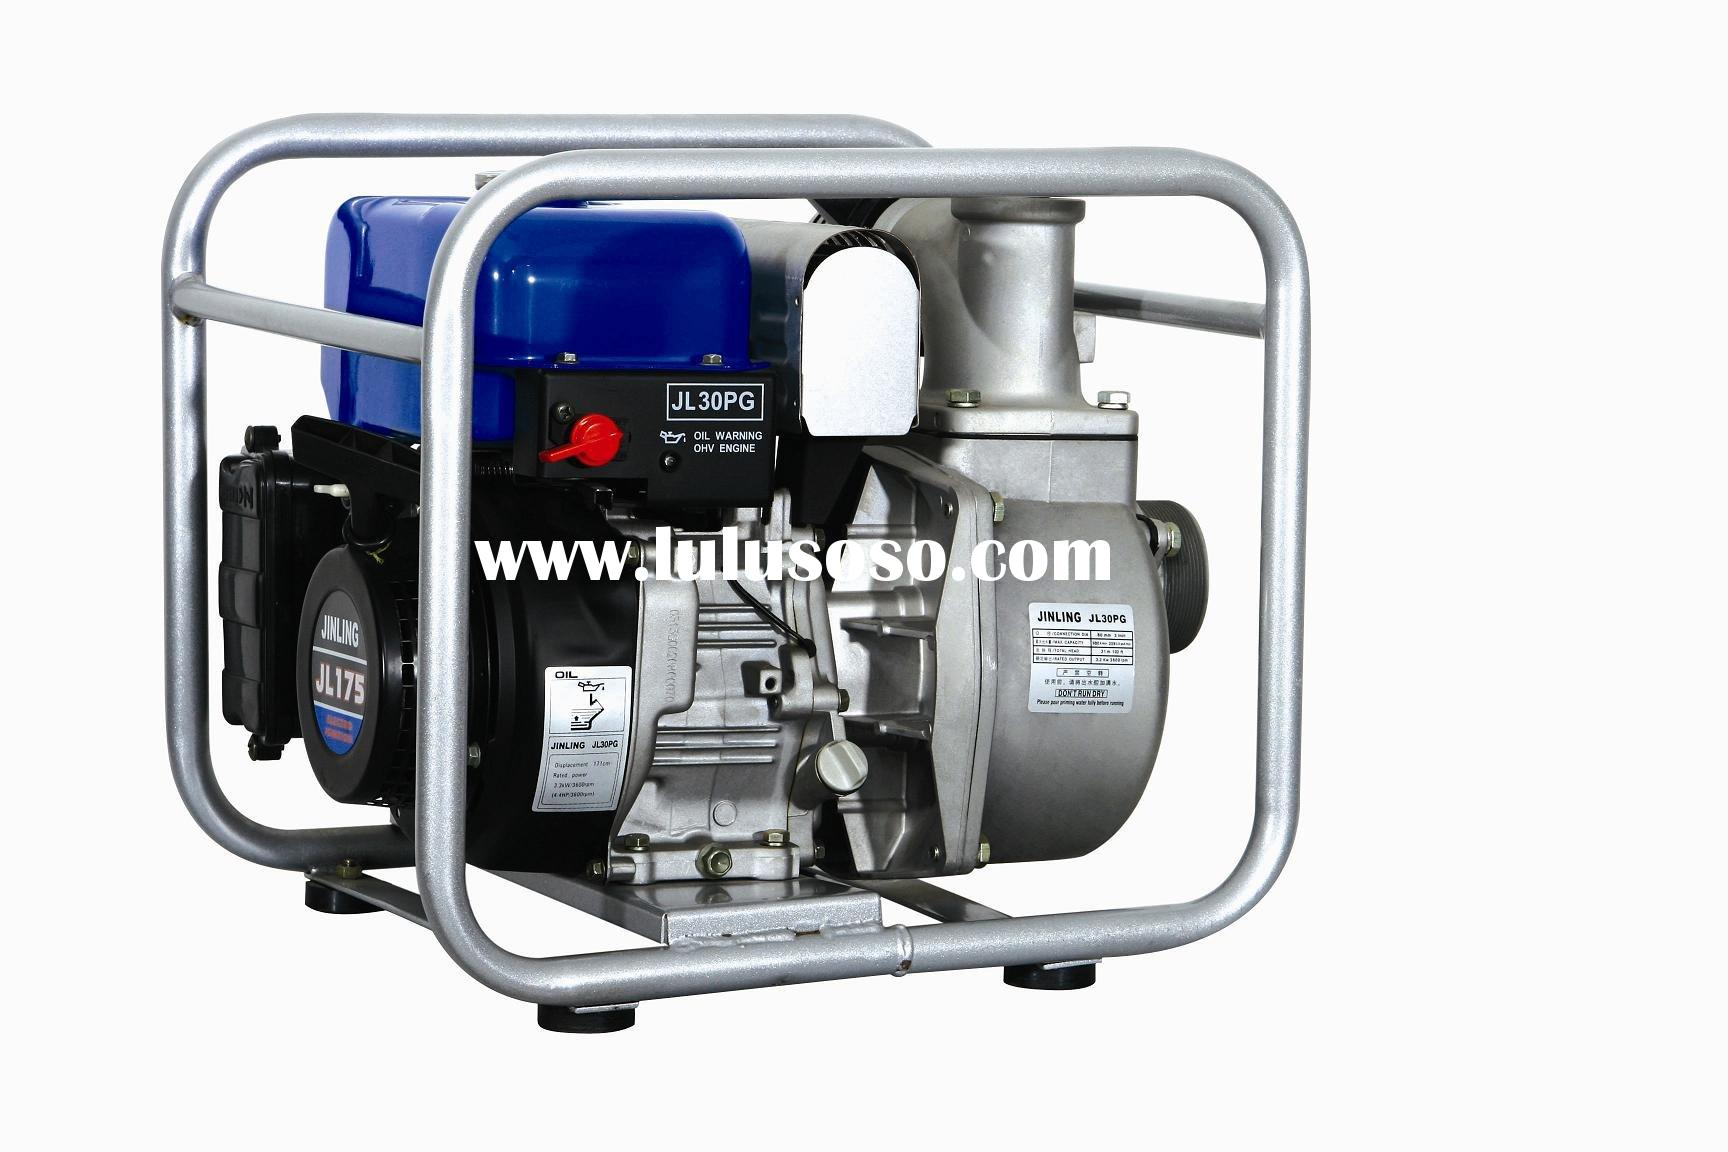 JL30PG 3 Inch Intake Gasoline Powered Portable Centrifugal Water Pump (water pump)